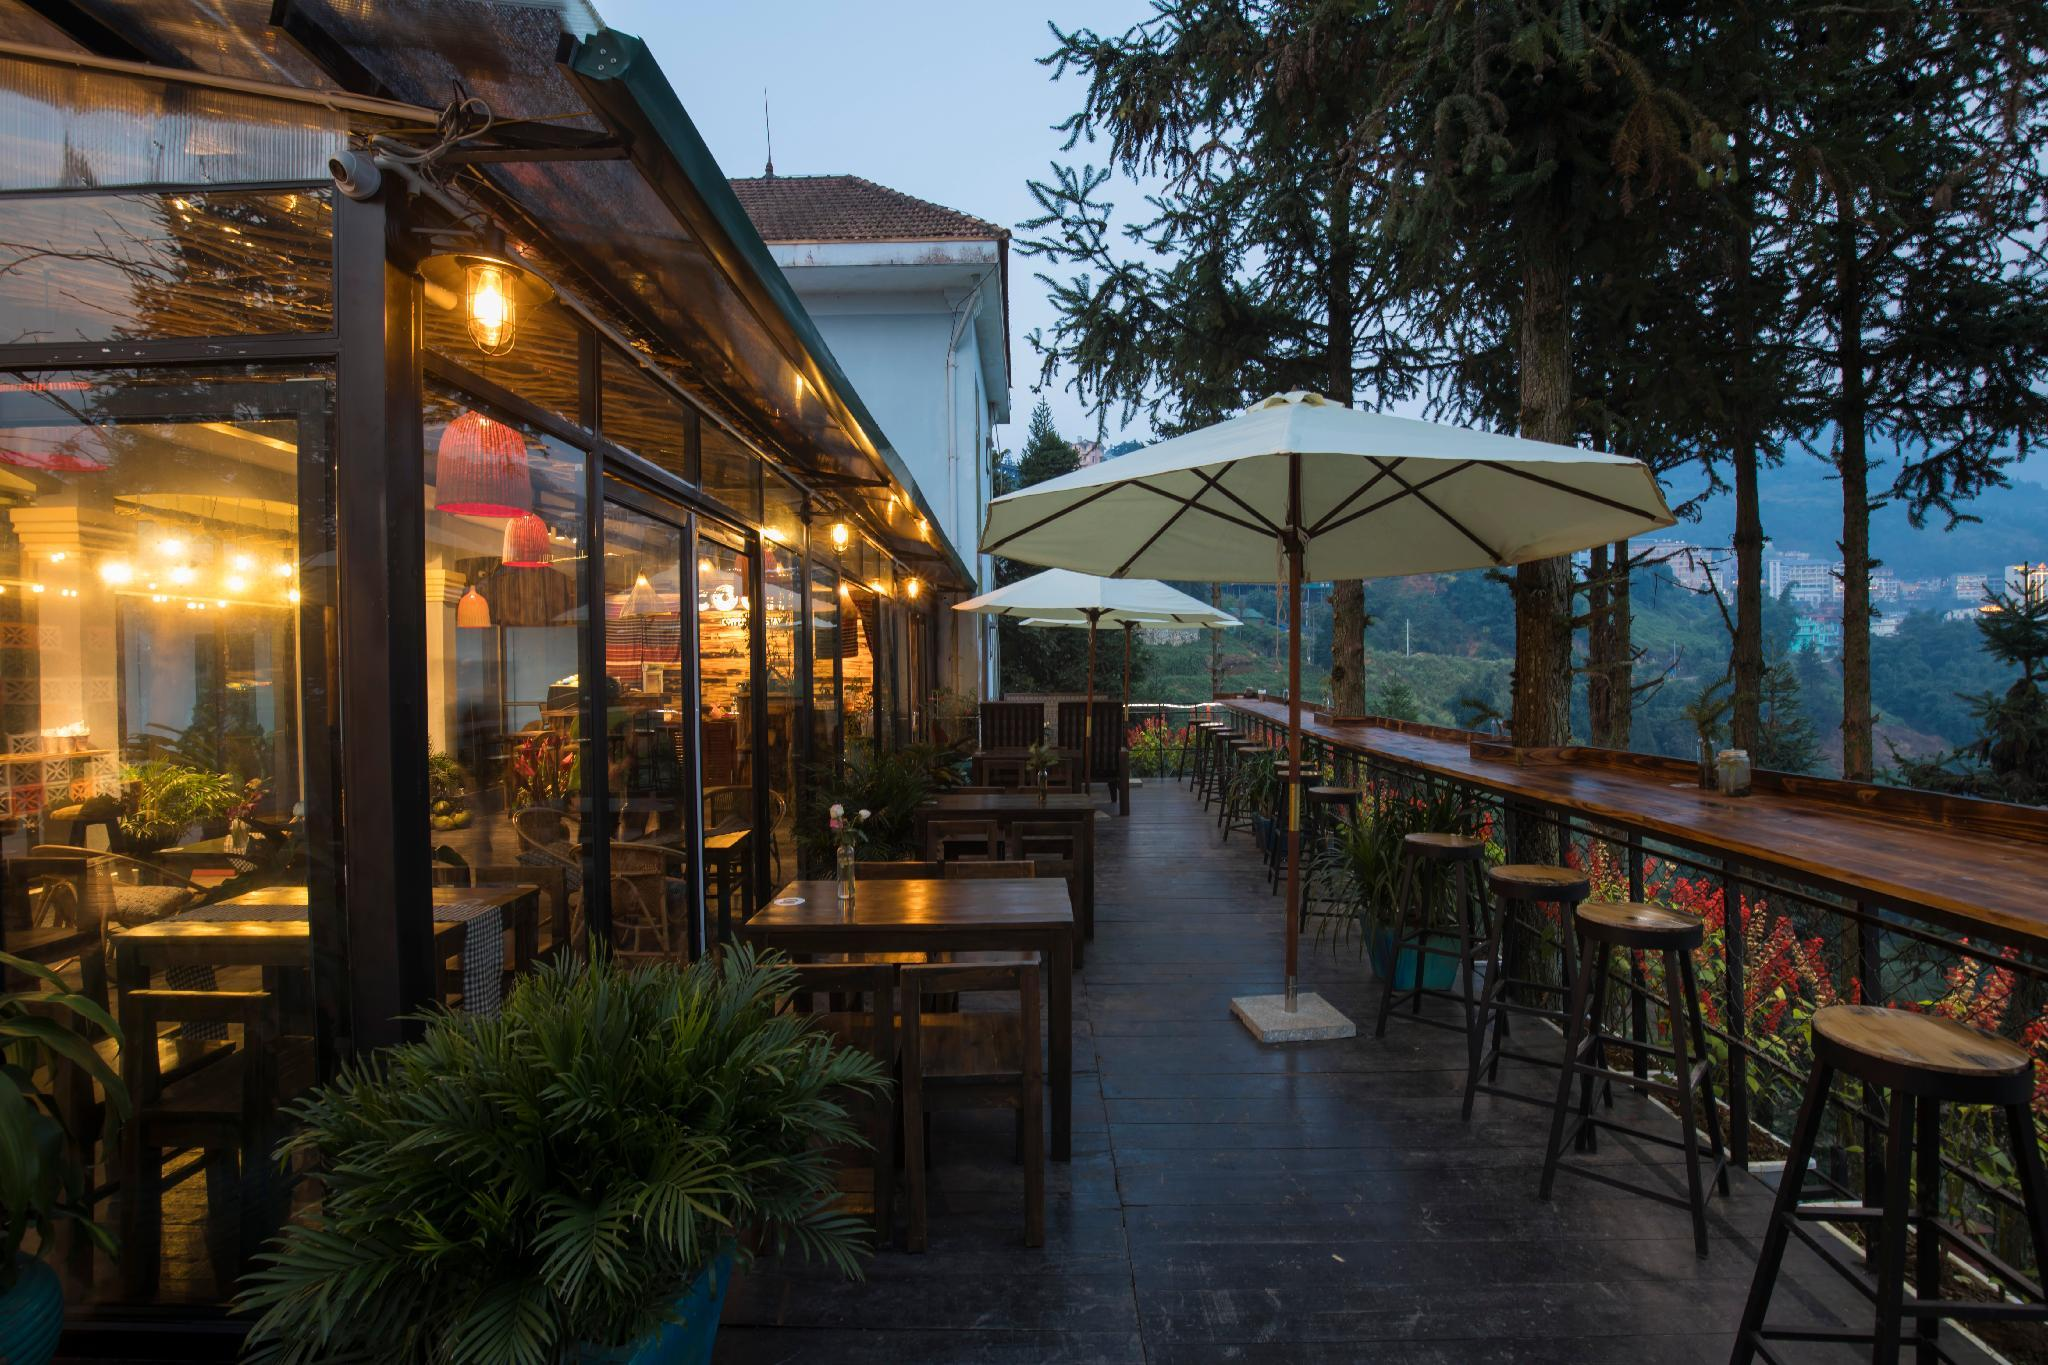 The Coong Homestay And Cafe Sapa